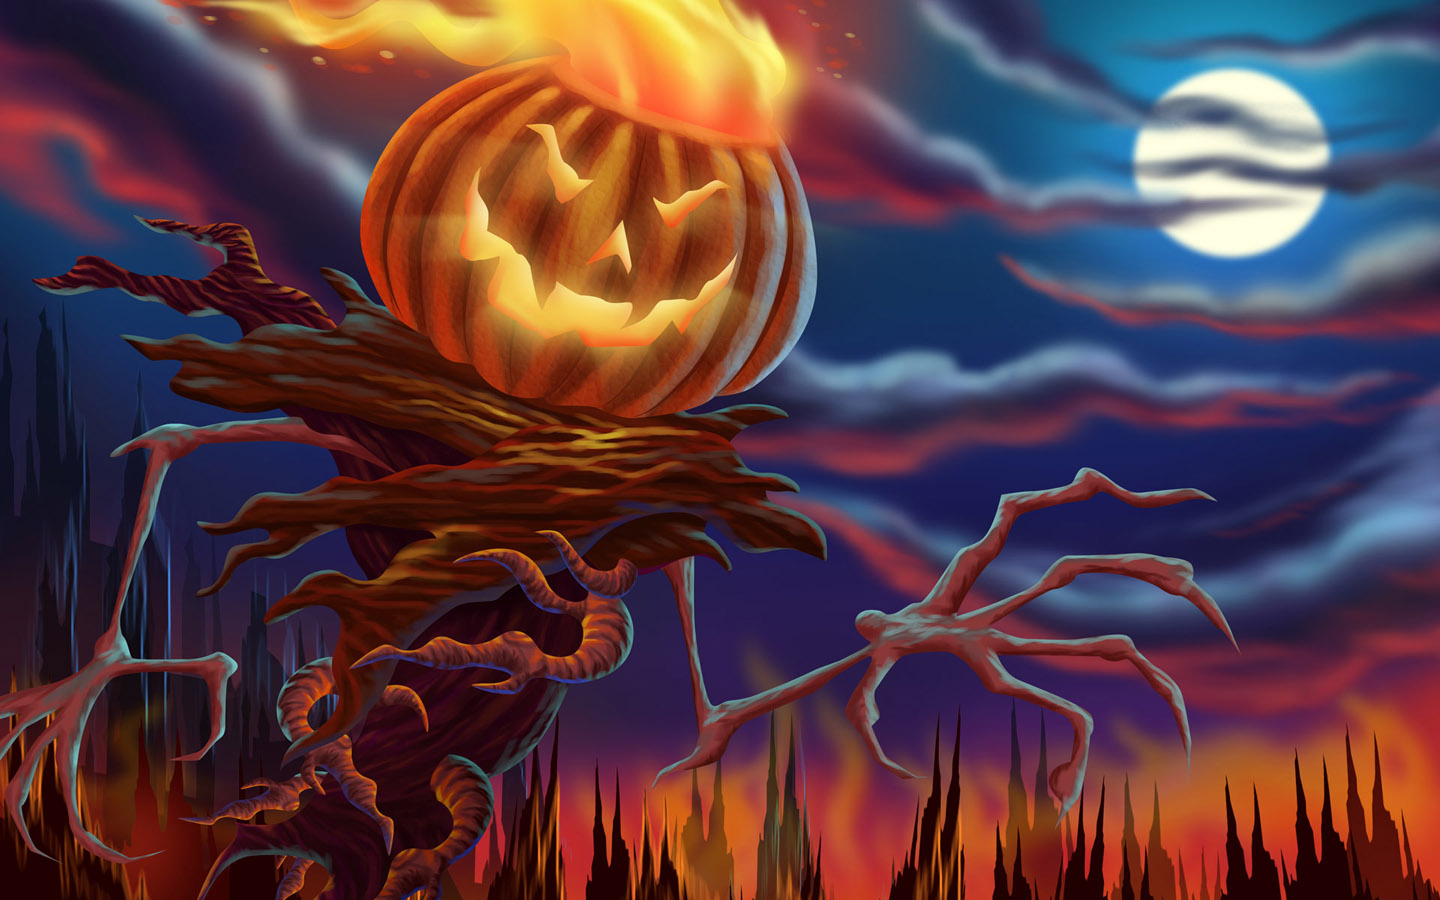 Scary Halloween 2012 HD Wallpapers Pumpkins Witches Spider Web 1440x900